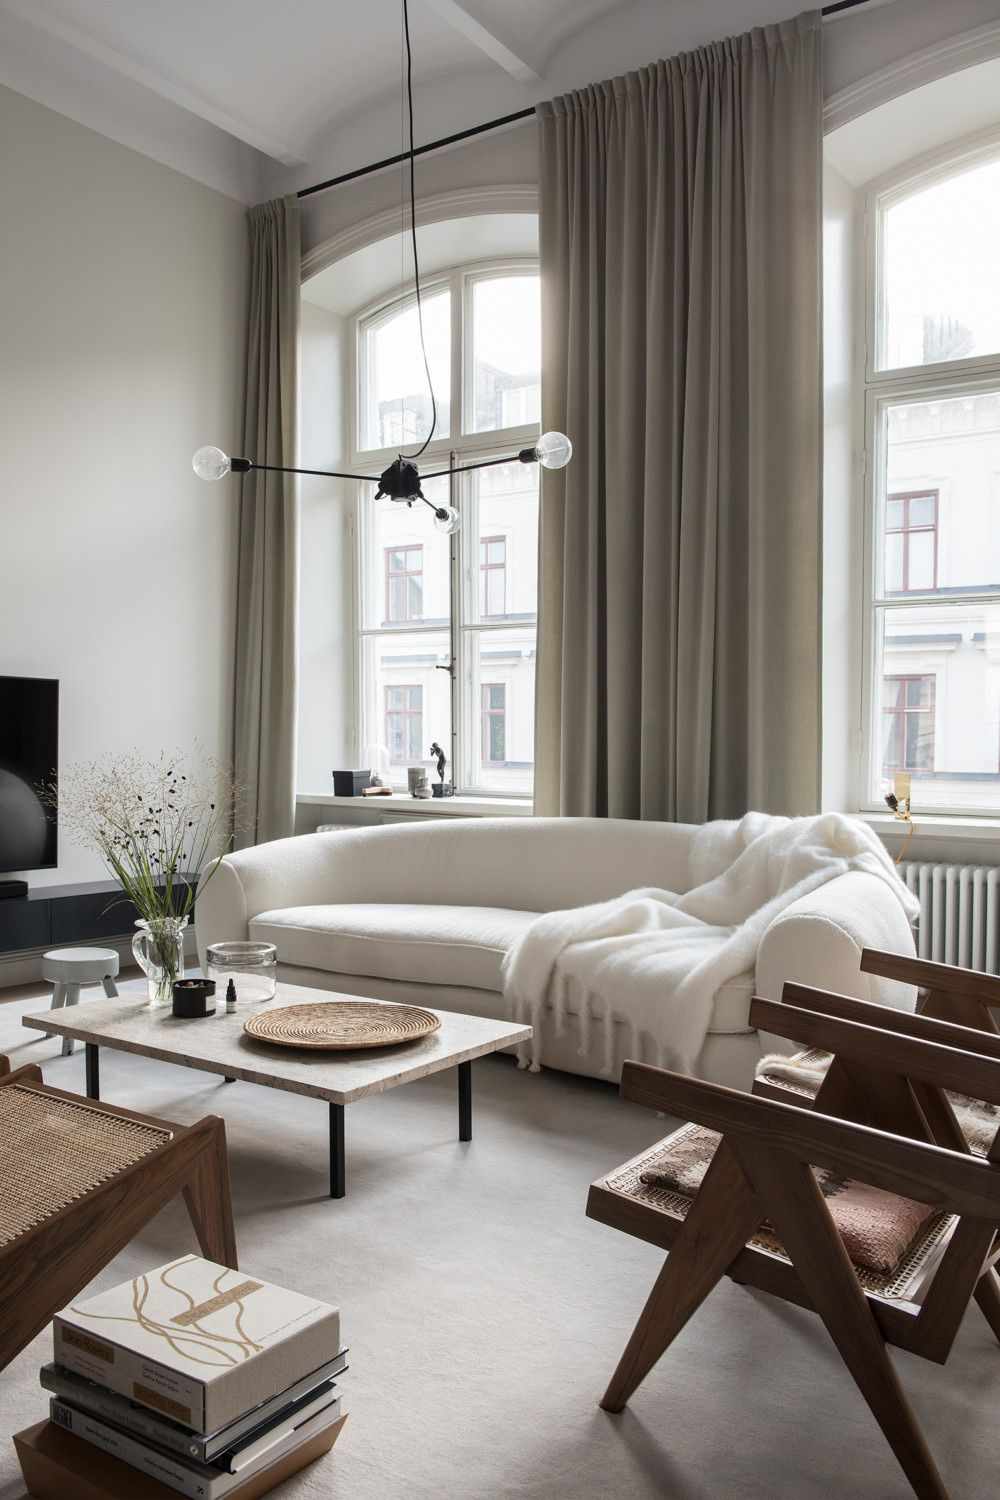 Swedish Living Room A Swedish Architect S Elegant And Contemporary Home Design